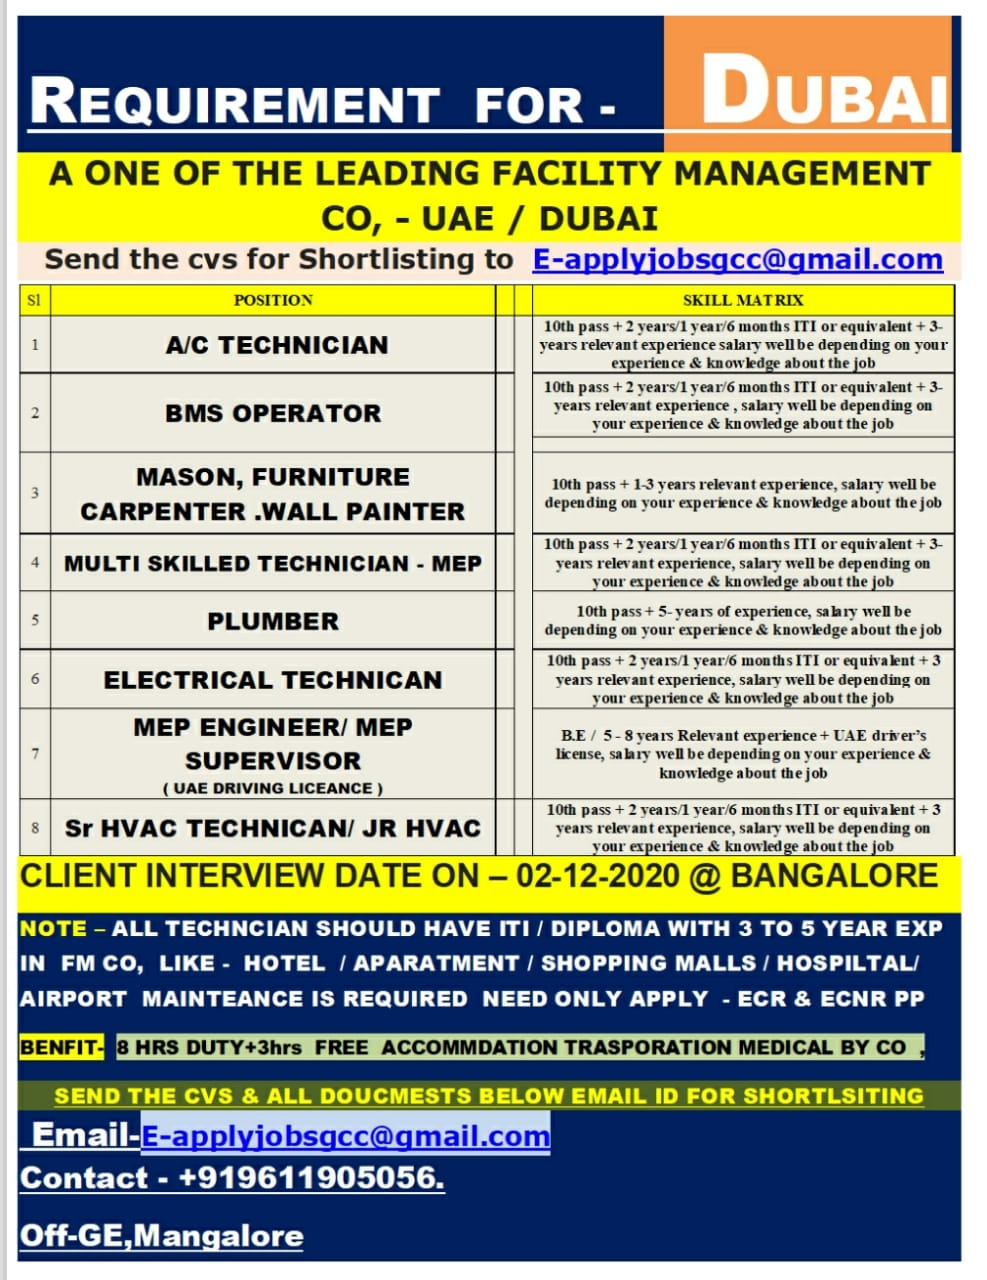 LEADING FACILITY MANAGEMENT CO-DUBAI